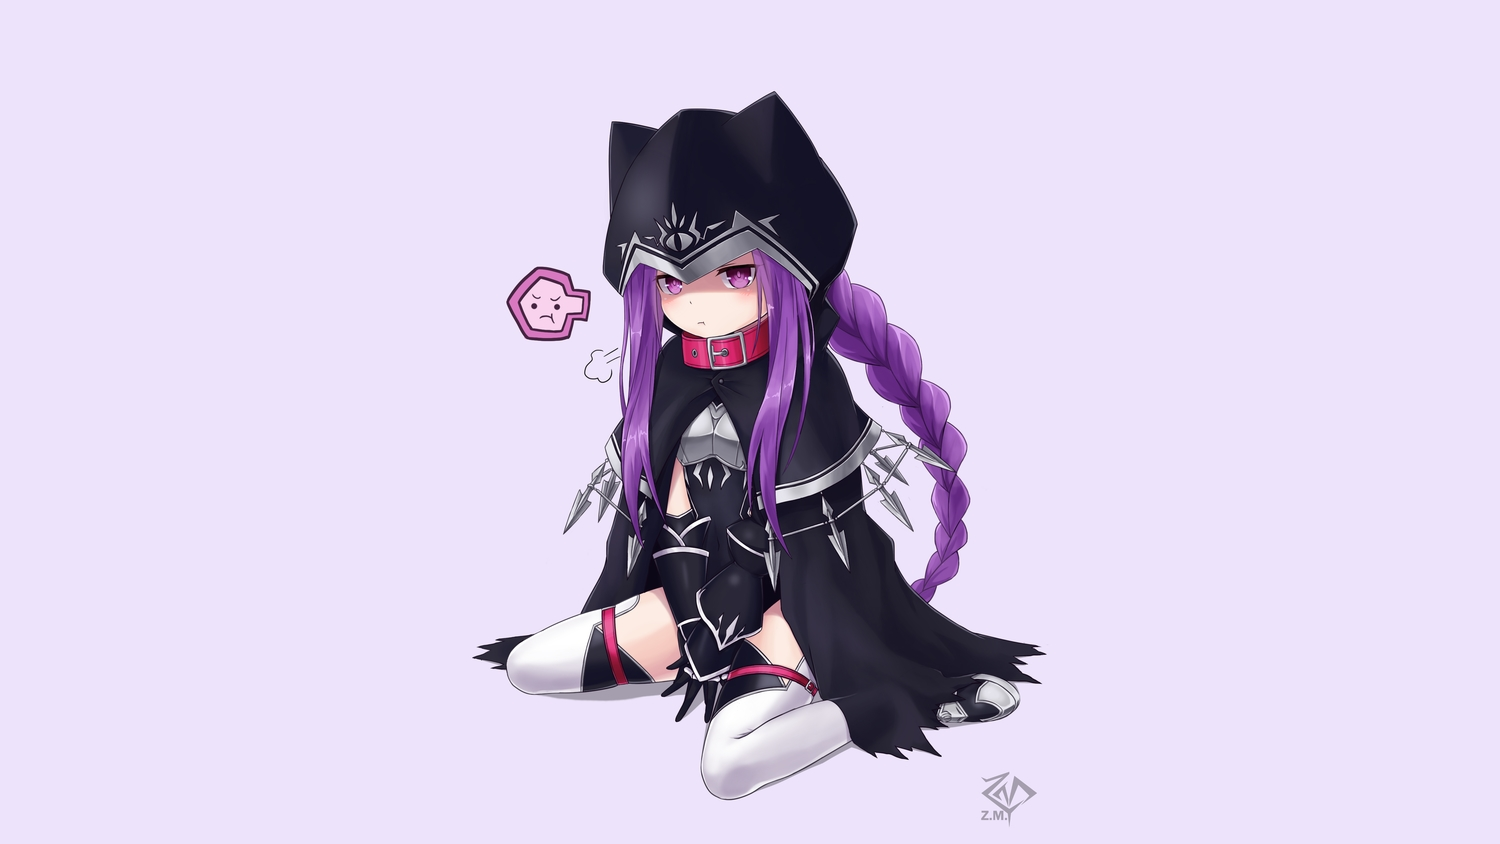 armor blush bodysuit cape collar elbow_gloves fate/grand_order fate_(series) gloves hoodie long_hair medusa_(lily) purple_eyes purple_hair rider signed thighhighs z.m.